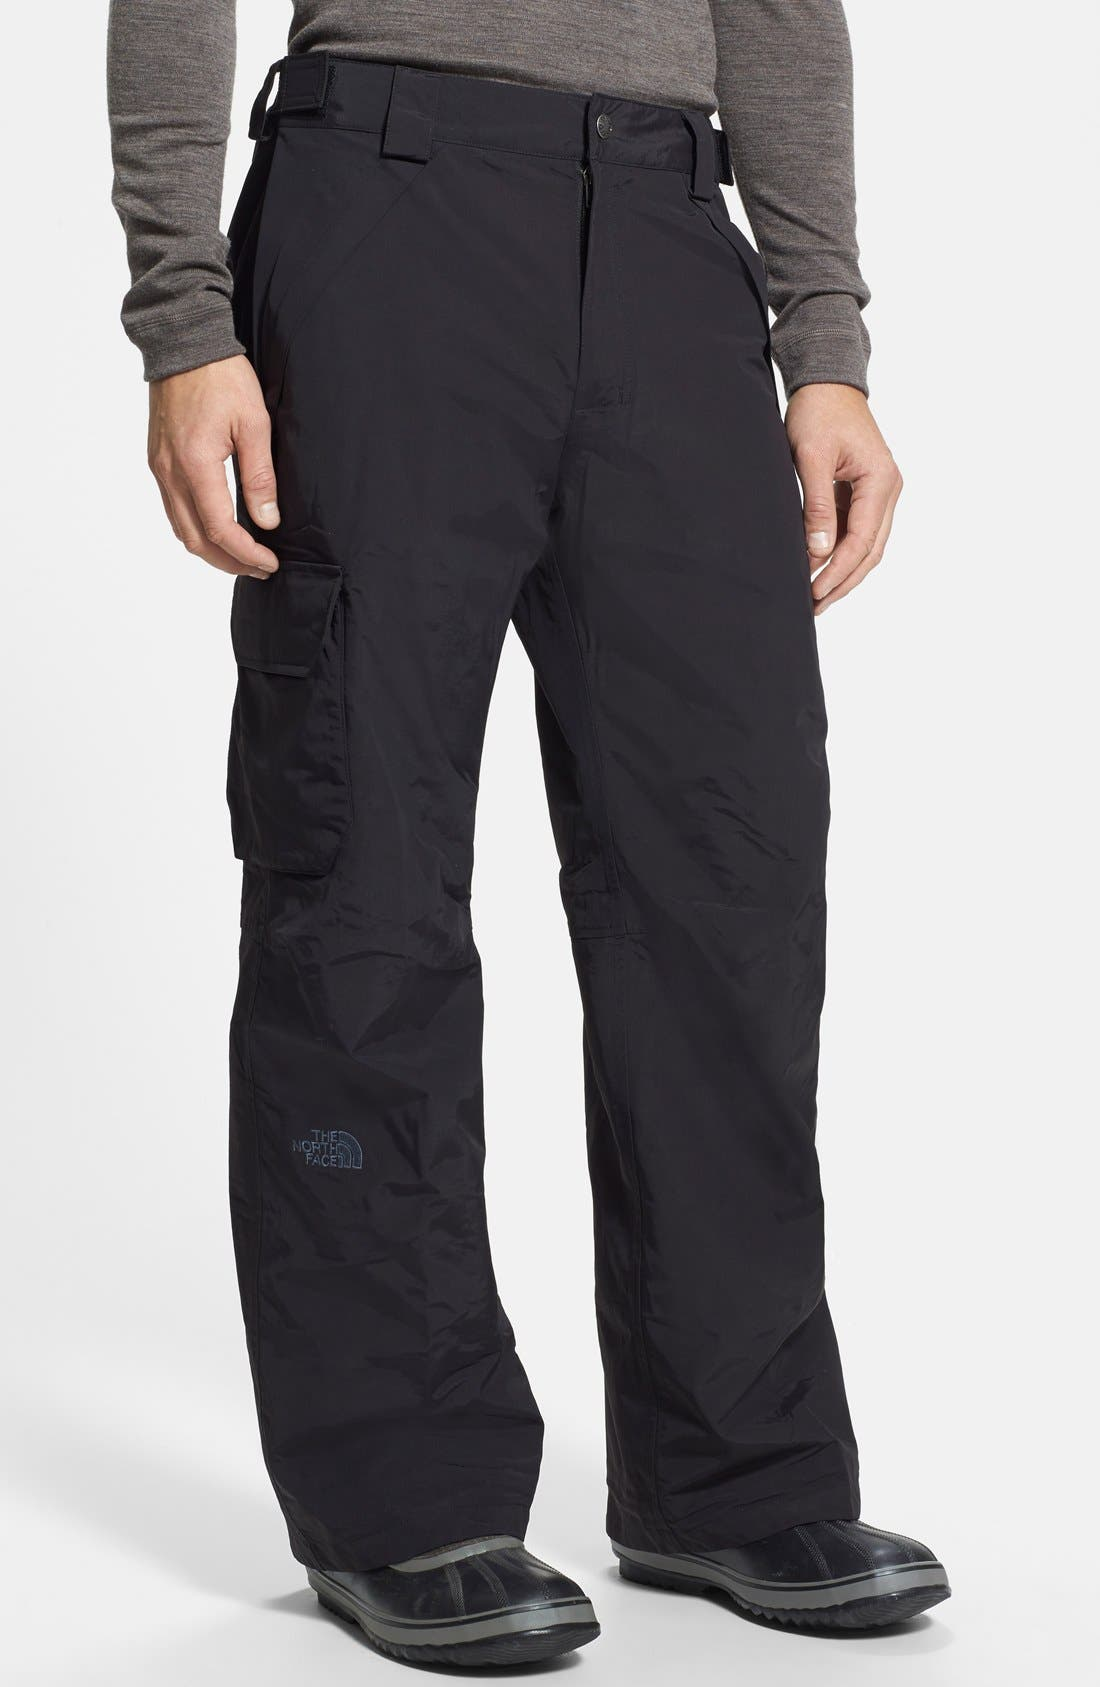 Alternate Image 1 Selected - The North Face 'Seymore' Ski Pants